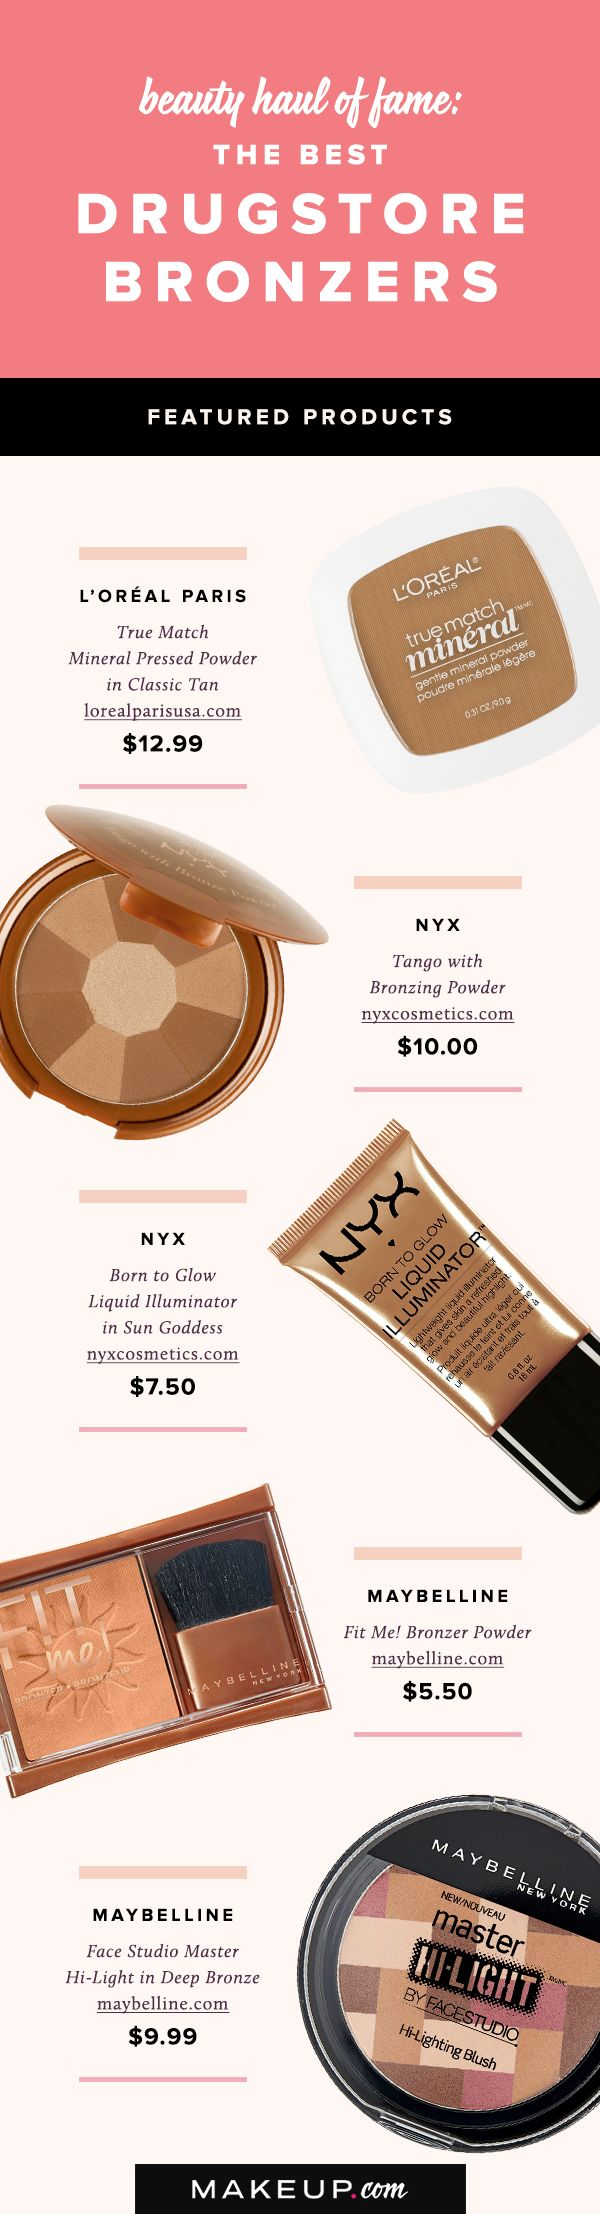 Summer is the season for bronzer! Many bronzers command big bucks, but our roundup is perfect for getting a beachy glow on a budget. These are our favorite affordable drugstore bronzers.